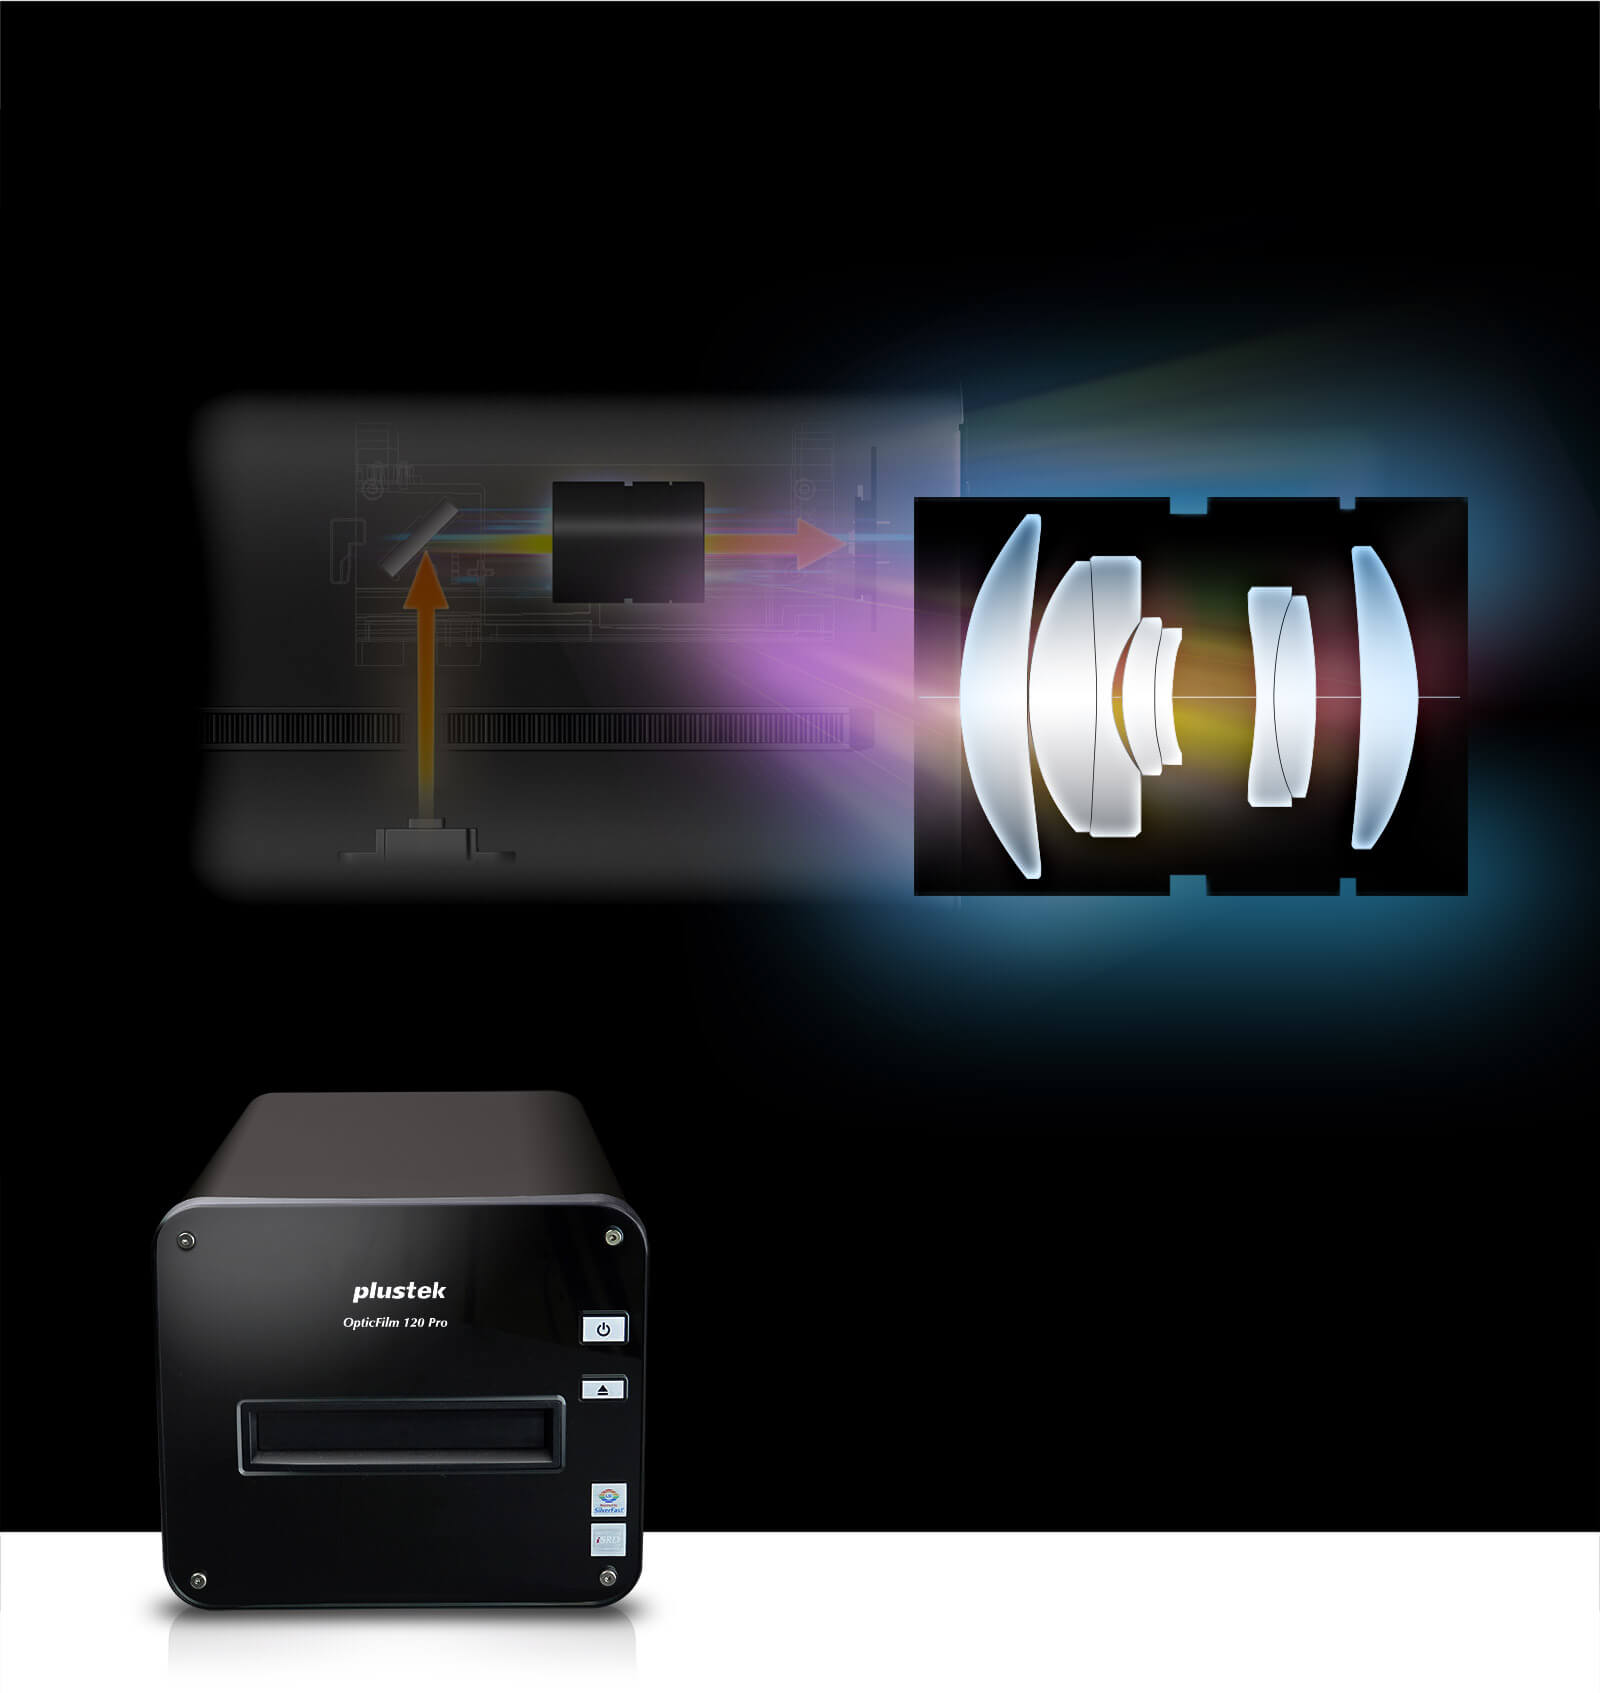 State of the art imaging system,OF120Pro Optical Resolution